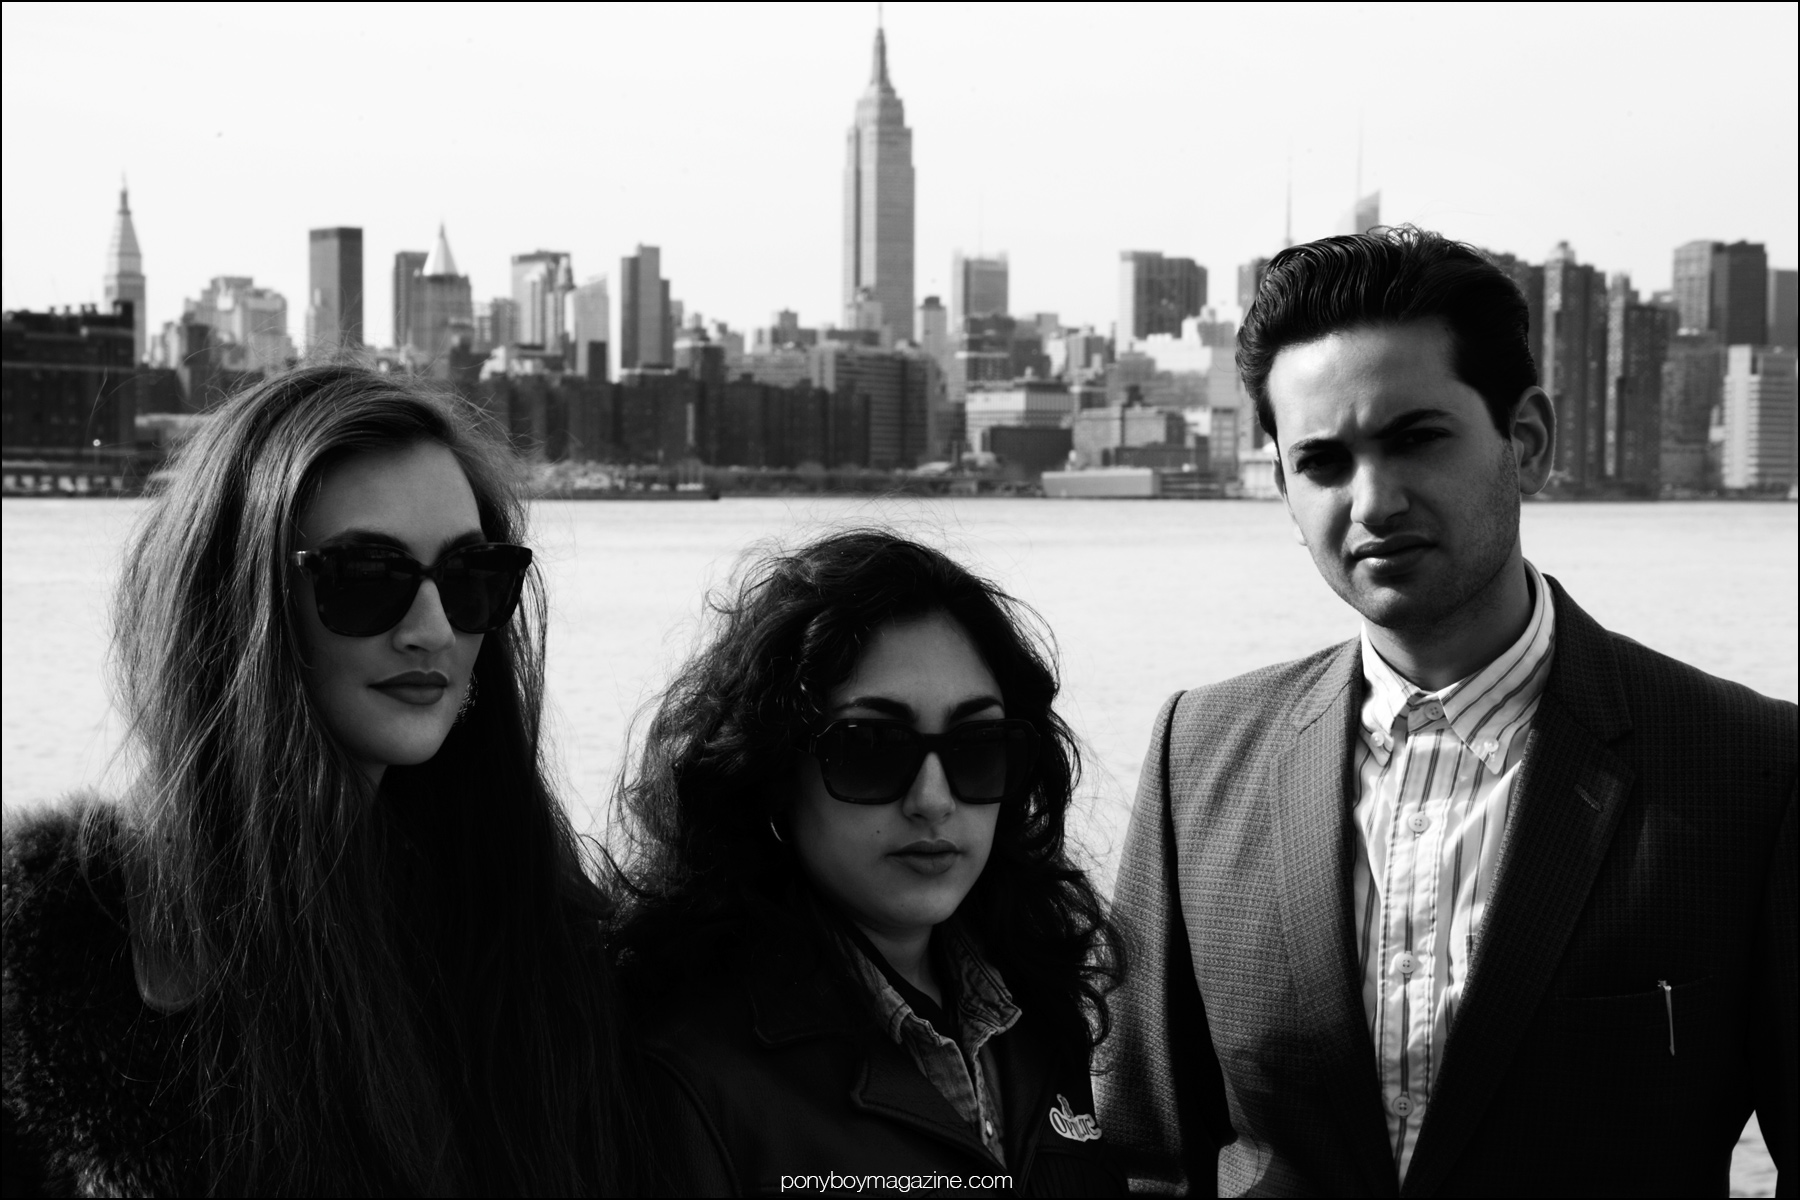 Musicians Kitty, Daisy and Lewis photographed in New York City by Alexander Thompson for Ponyboy magazine.